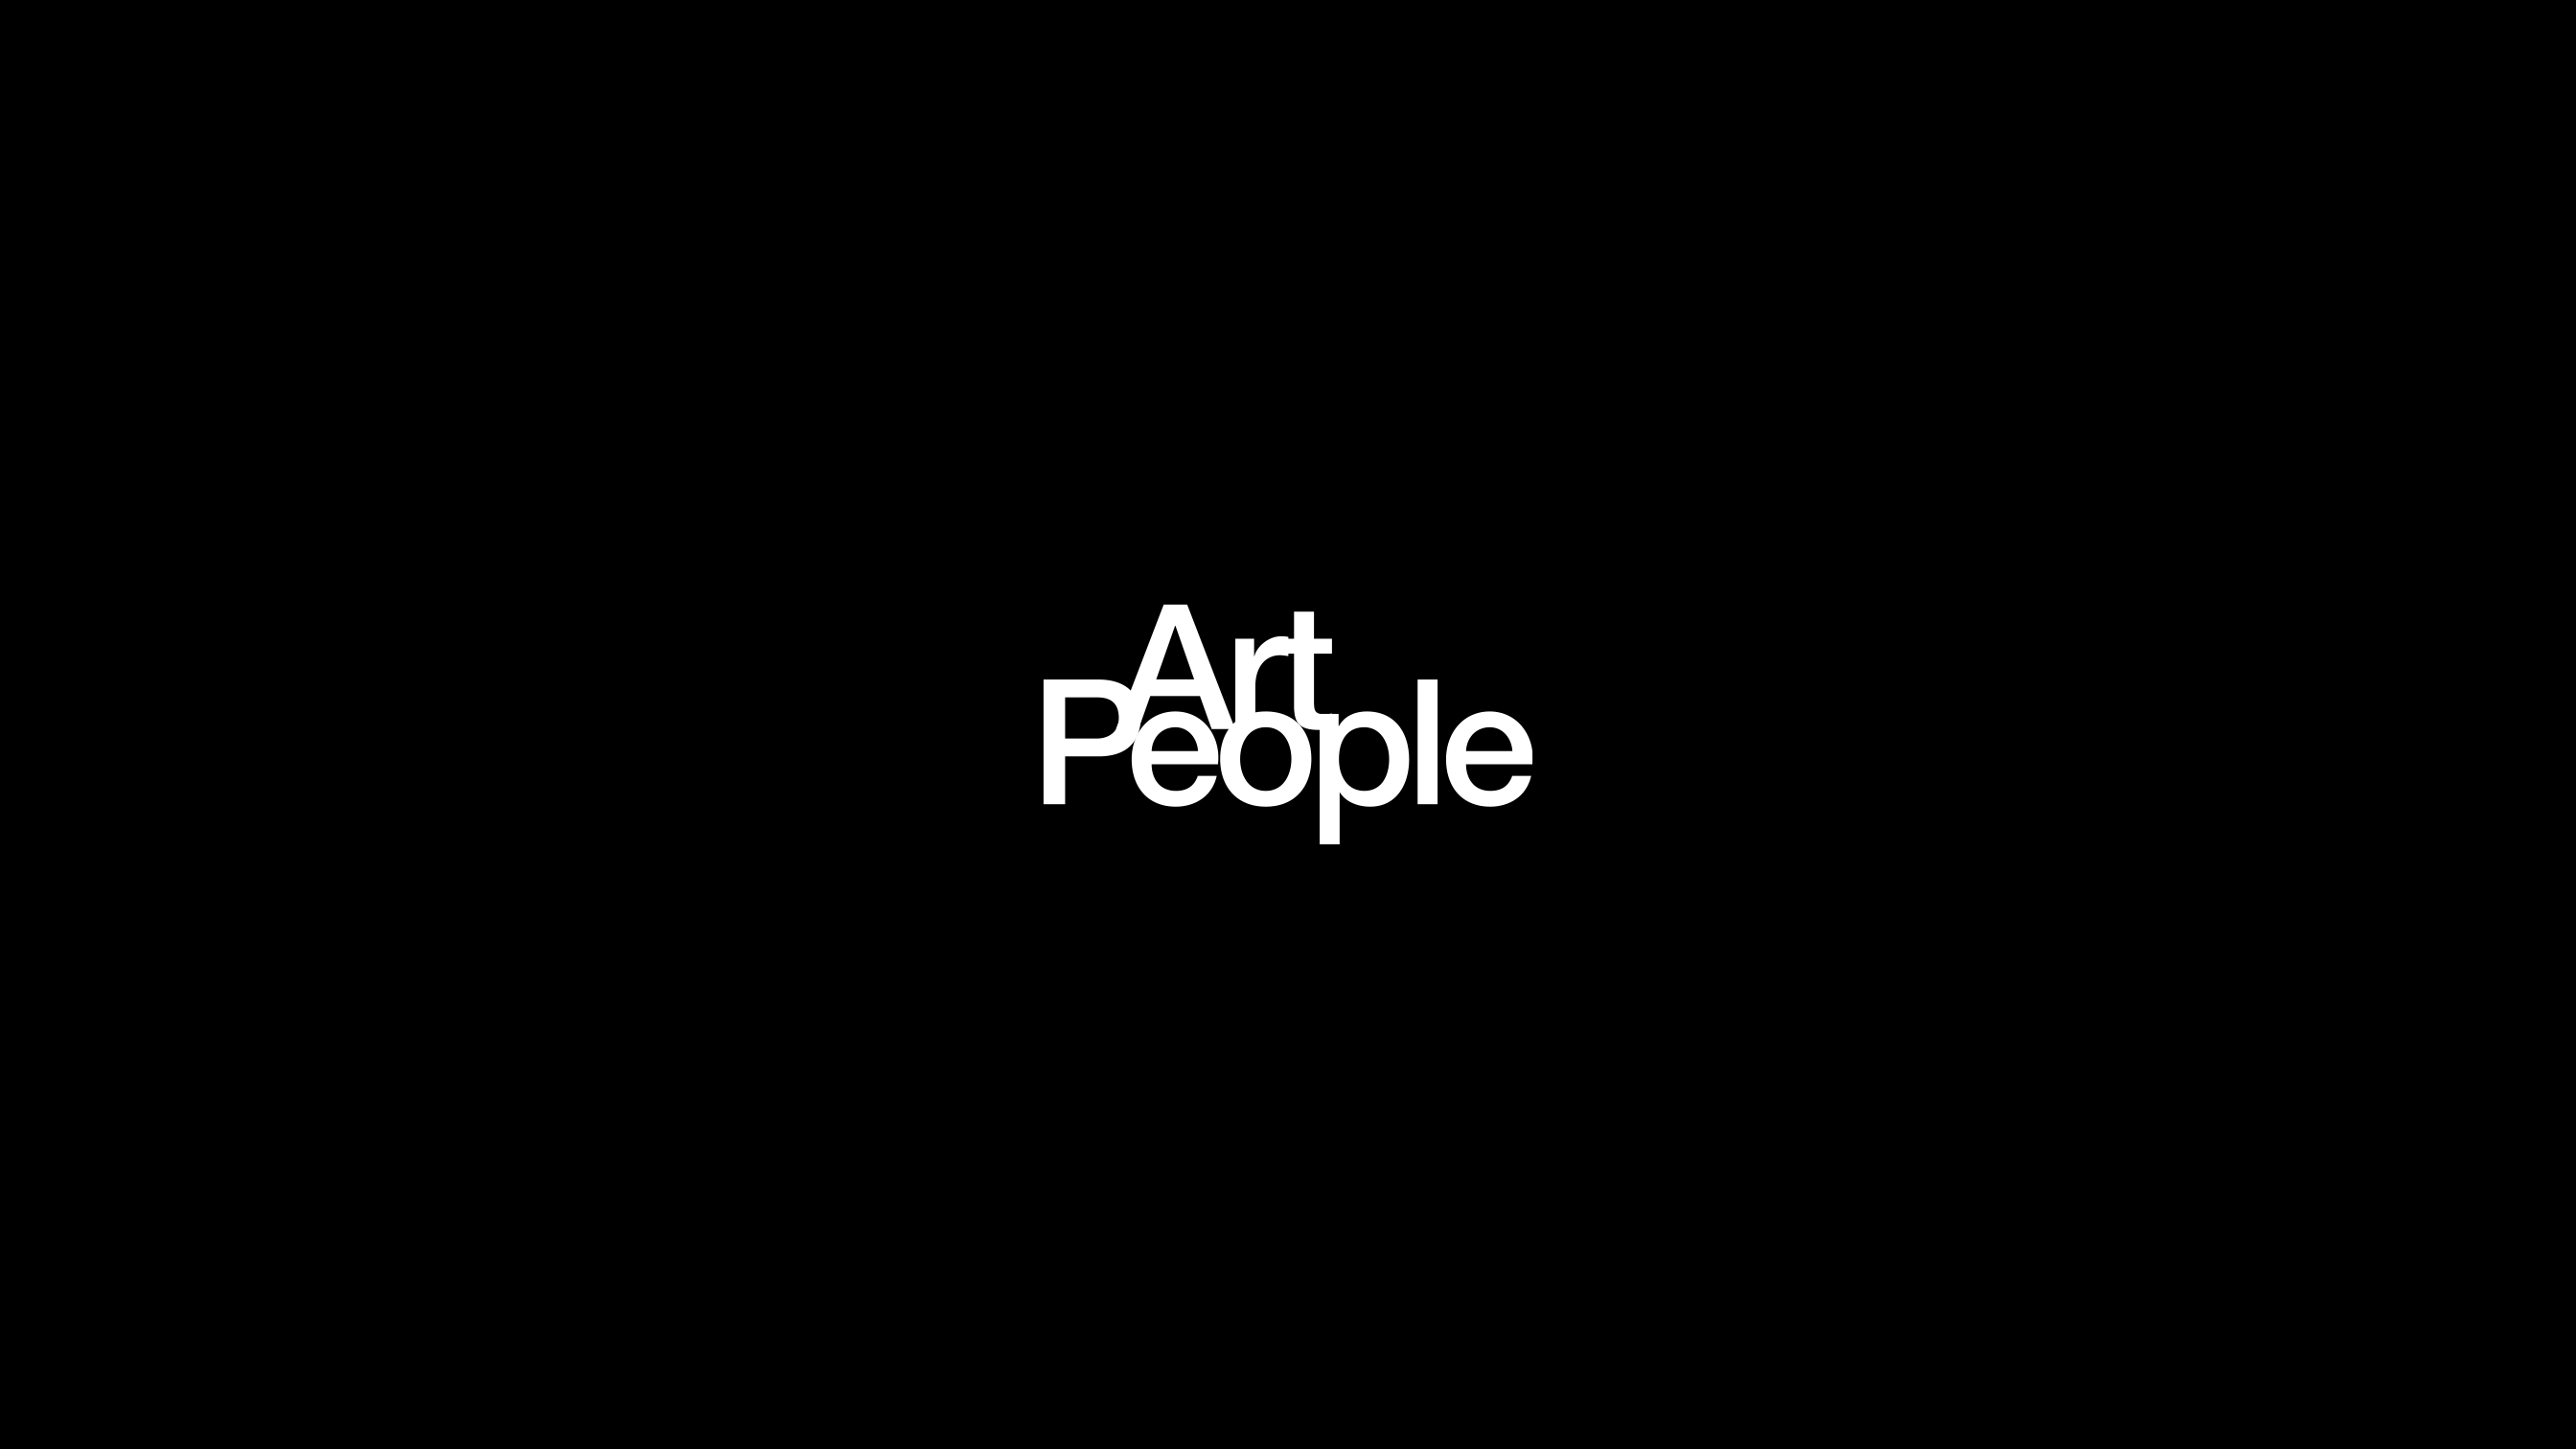 01-logo-artpeople-pikteo-webdesign-graphic-design-freelance-paris-bruxelles-londres